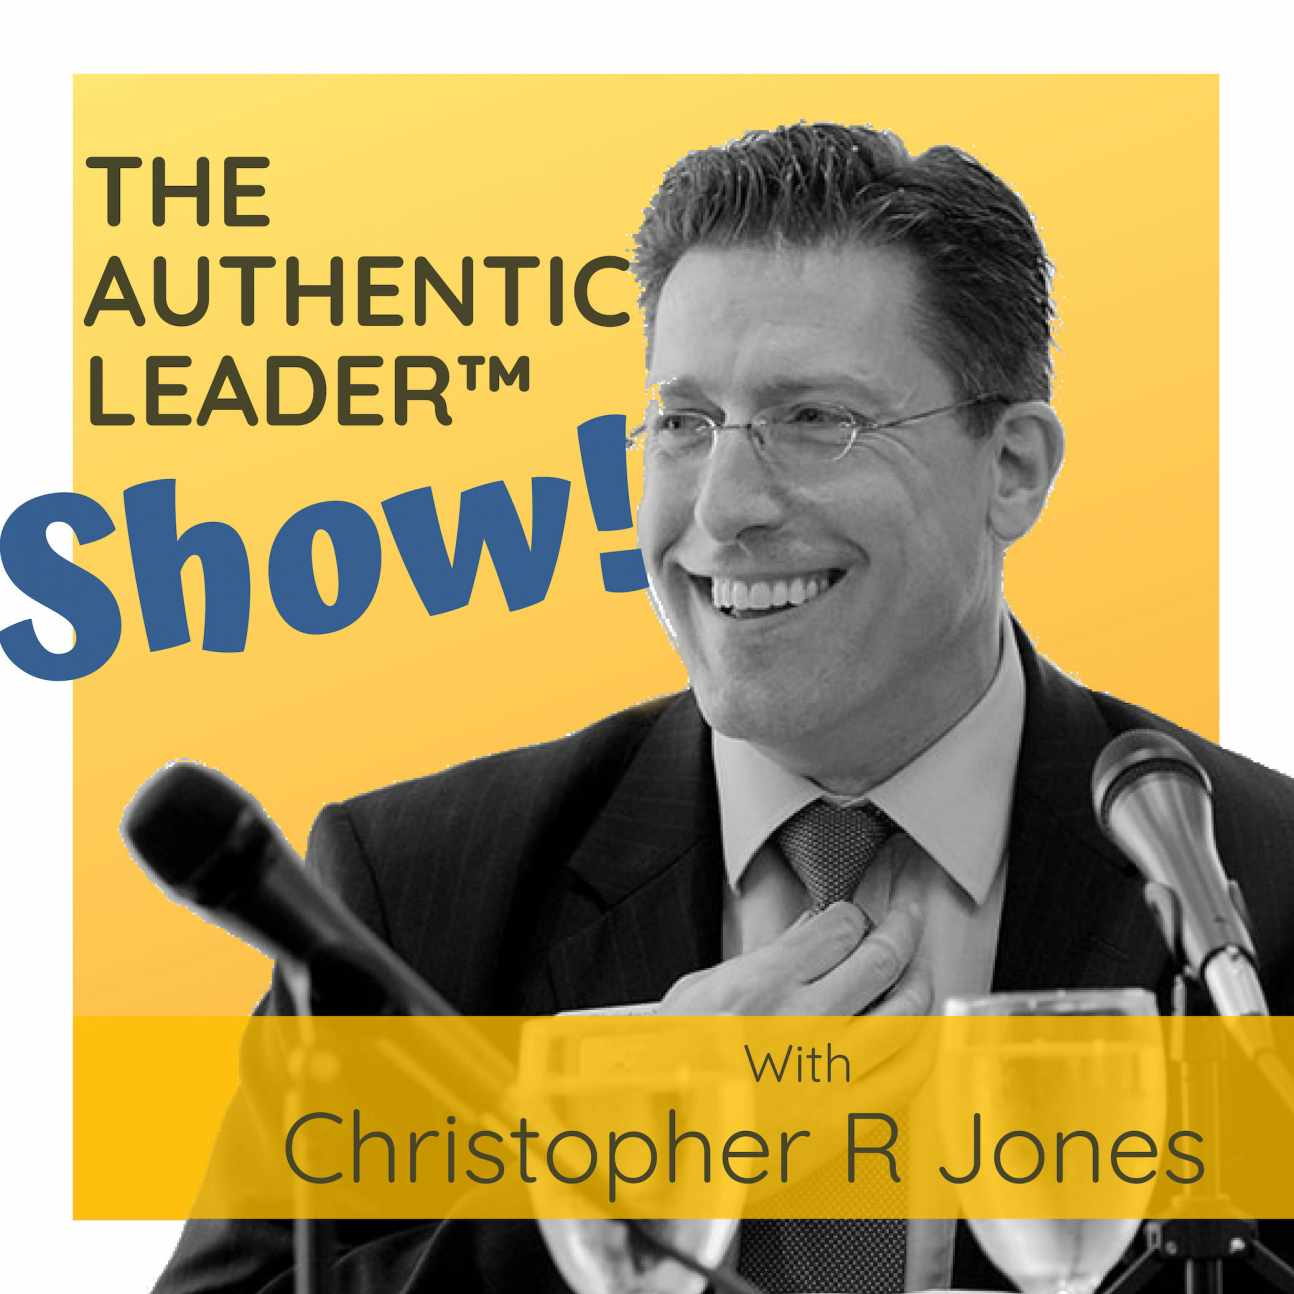 The Authentic Leader Show